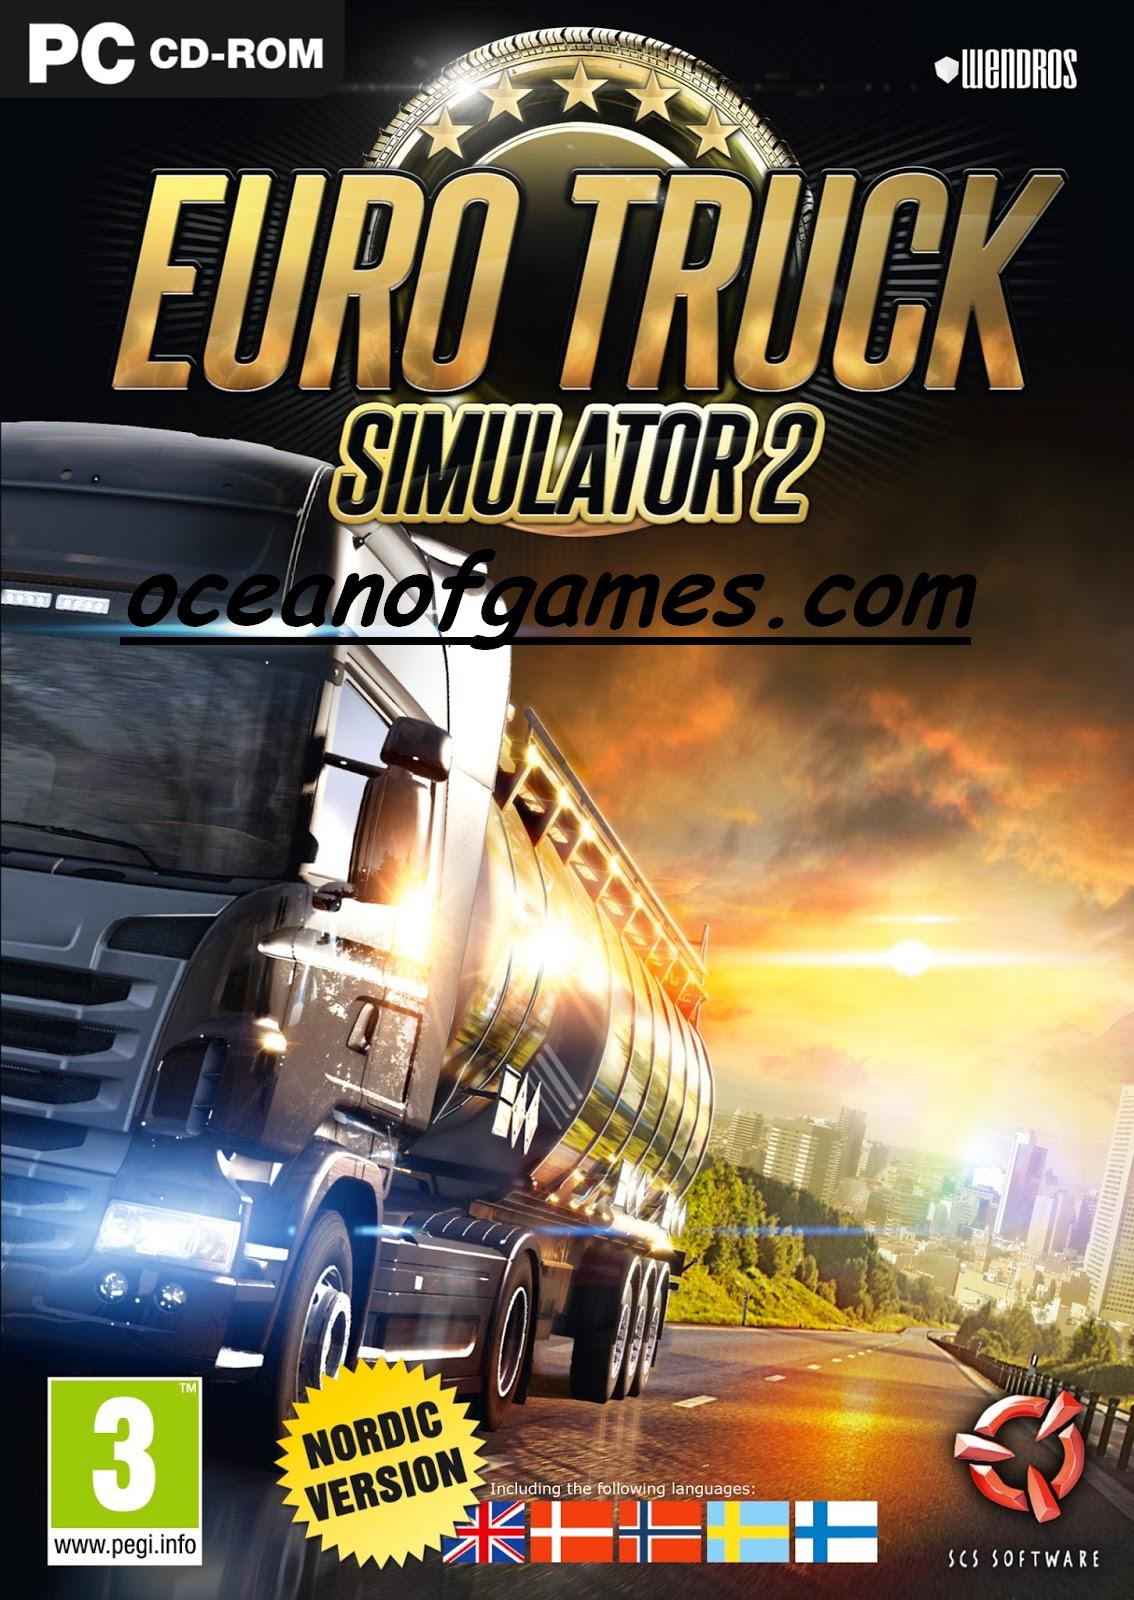 Euro Truck Simulator 2 Free Download - Ocean Of Games